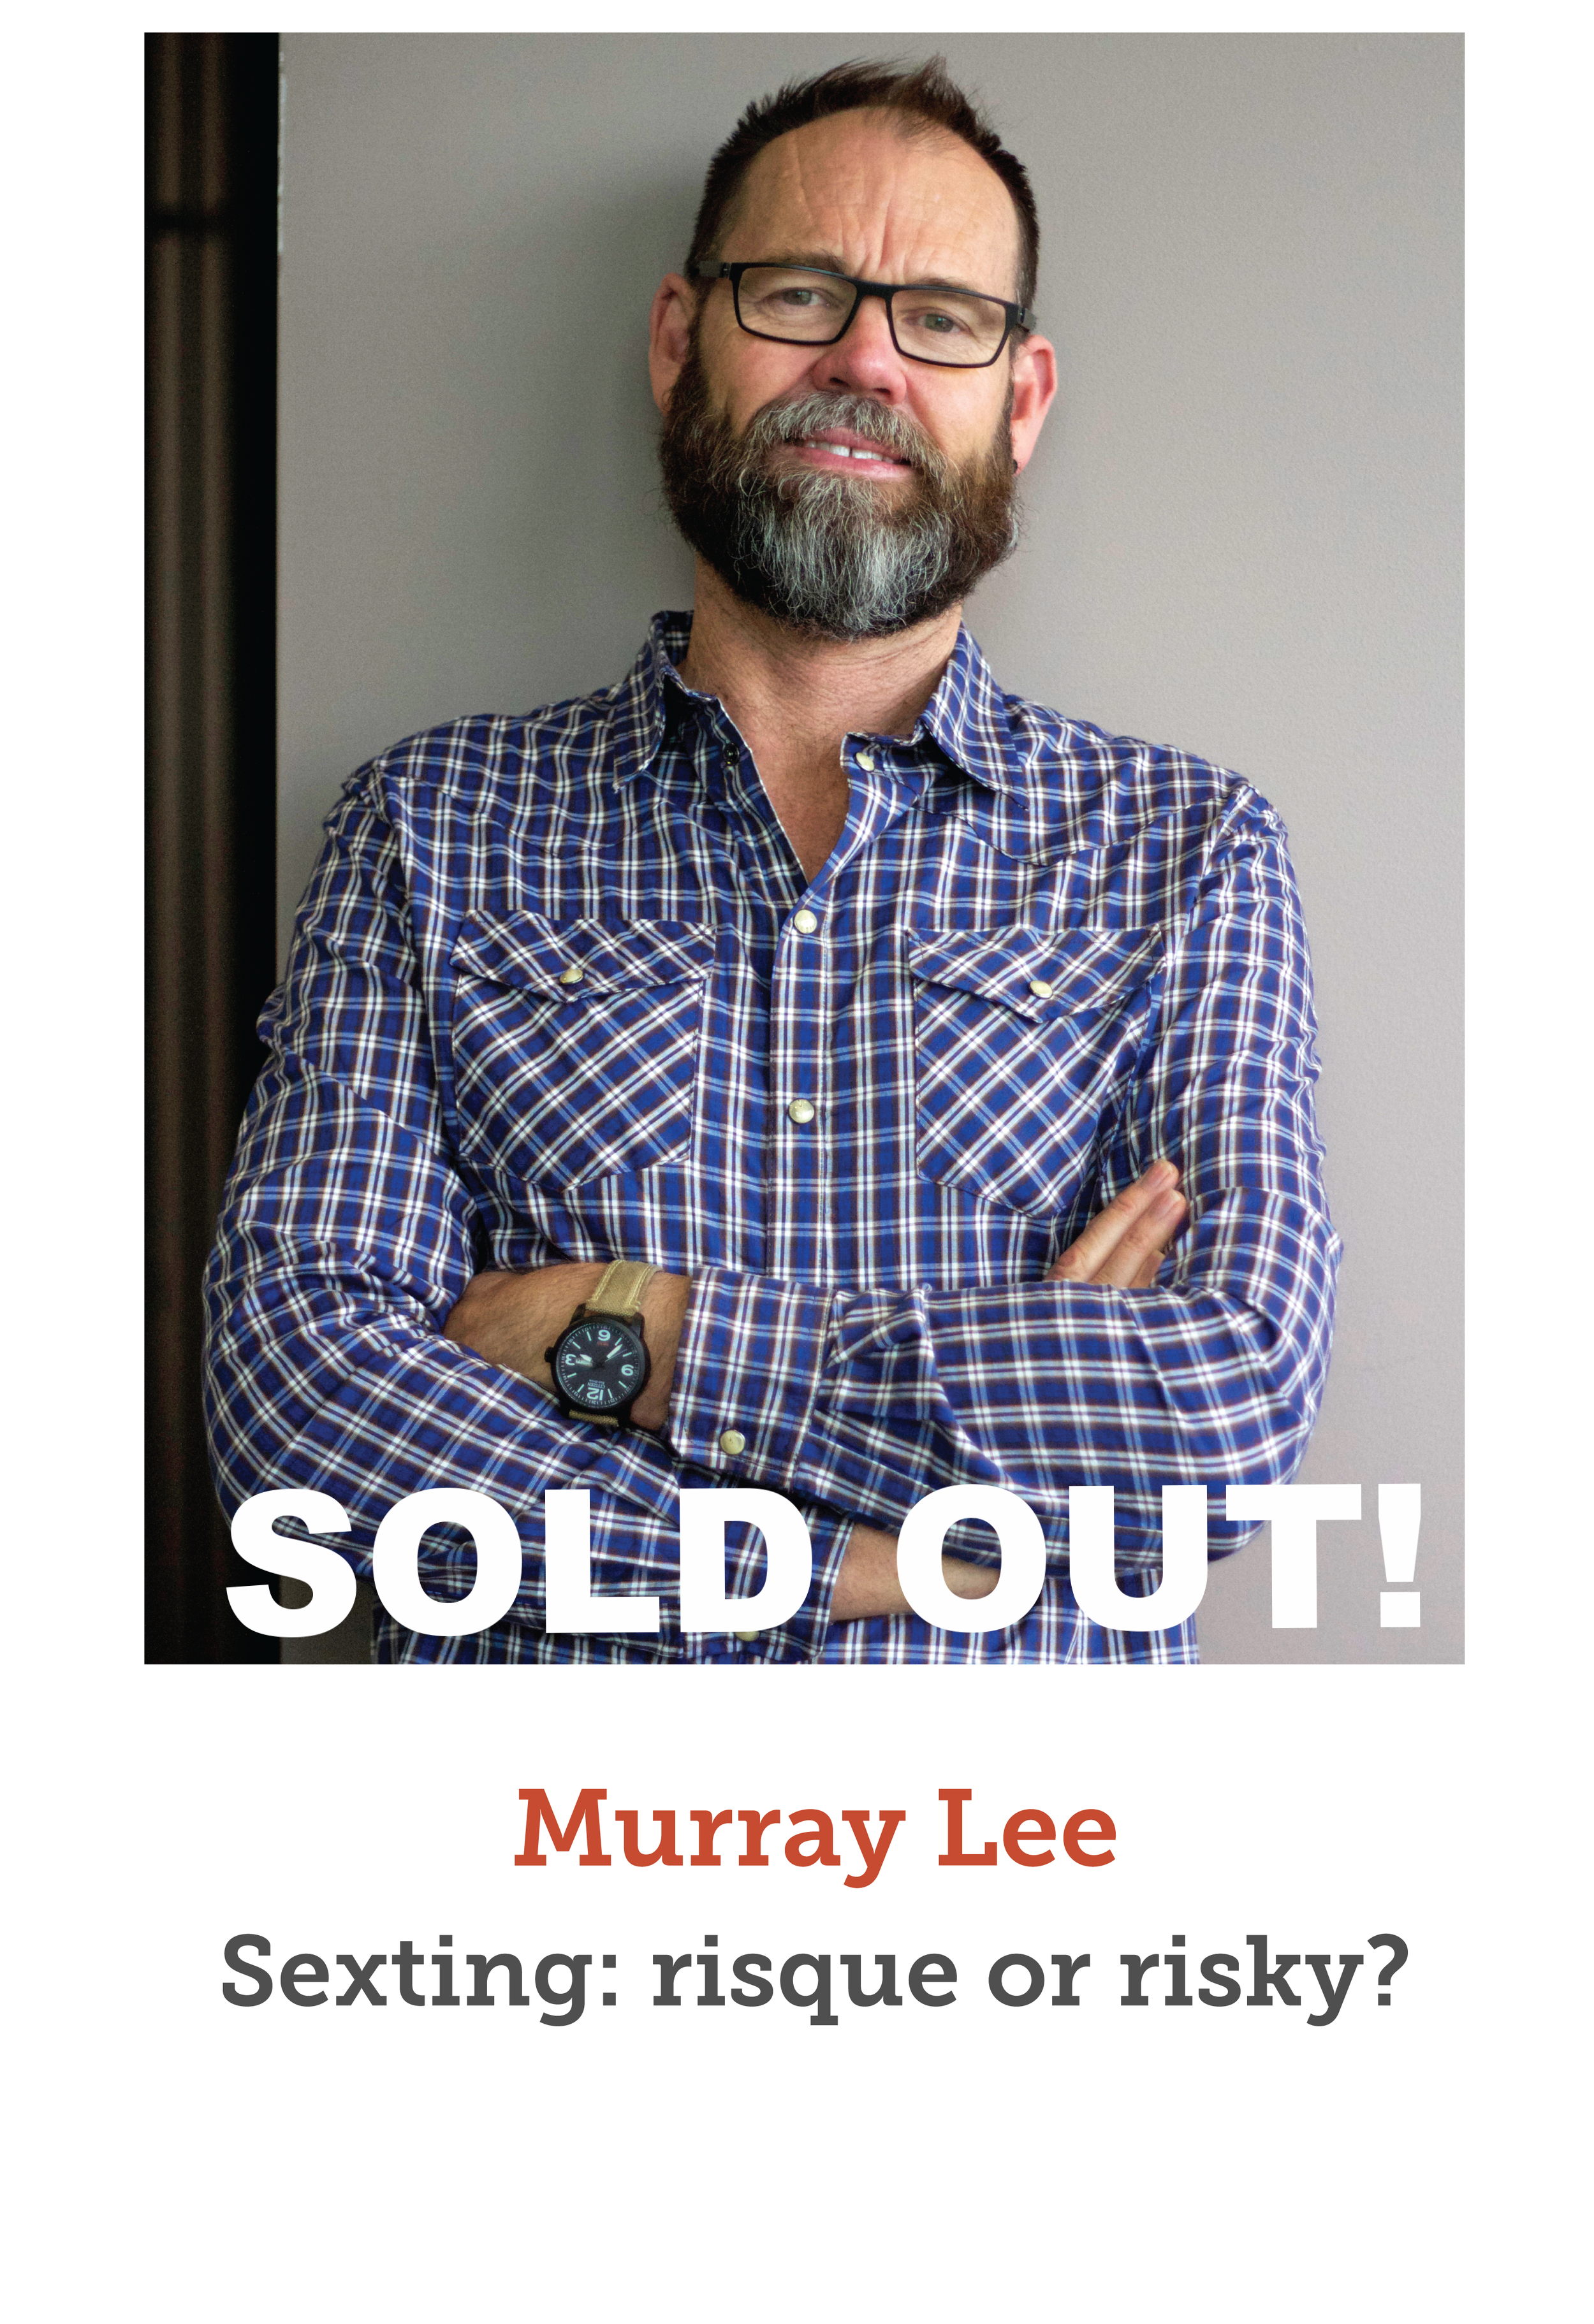 Murray-L!-01.png